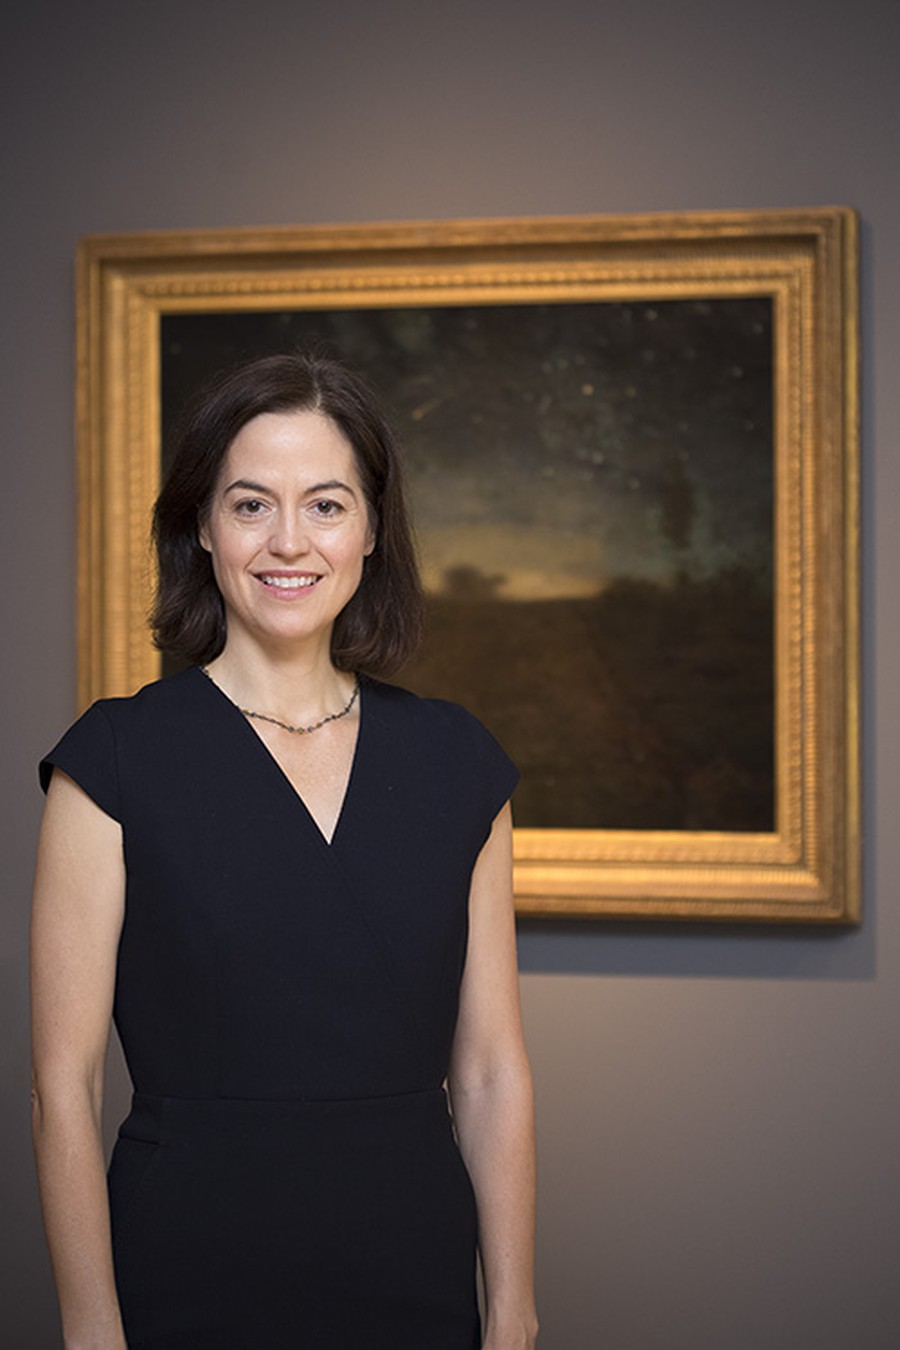 Issa Lampe, the Feitler Center's founding director, recently joined the Smart Museum from the Yale University Art Gallery.